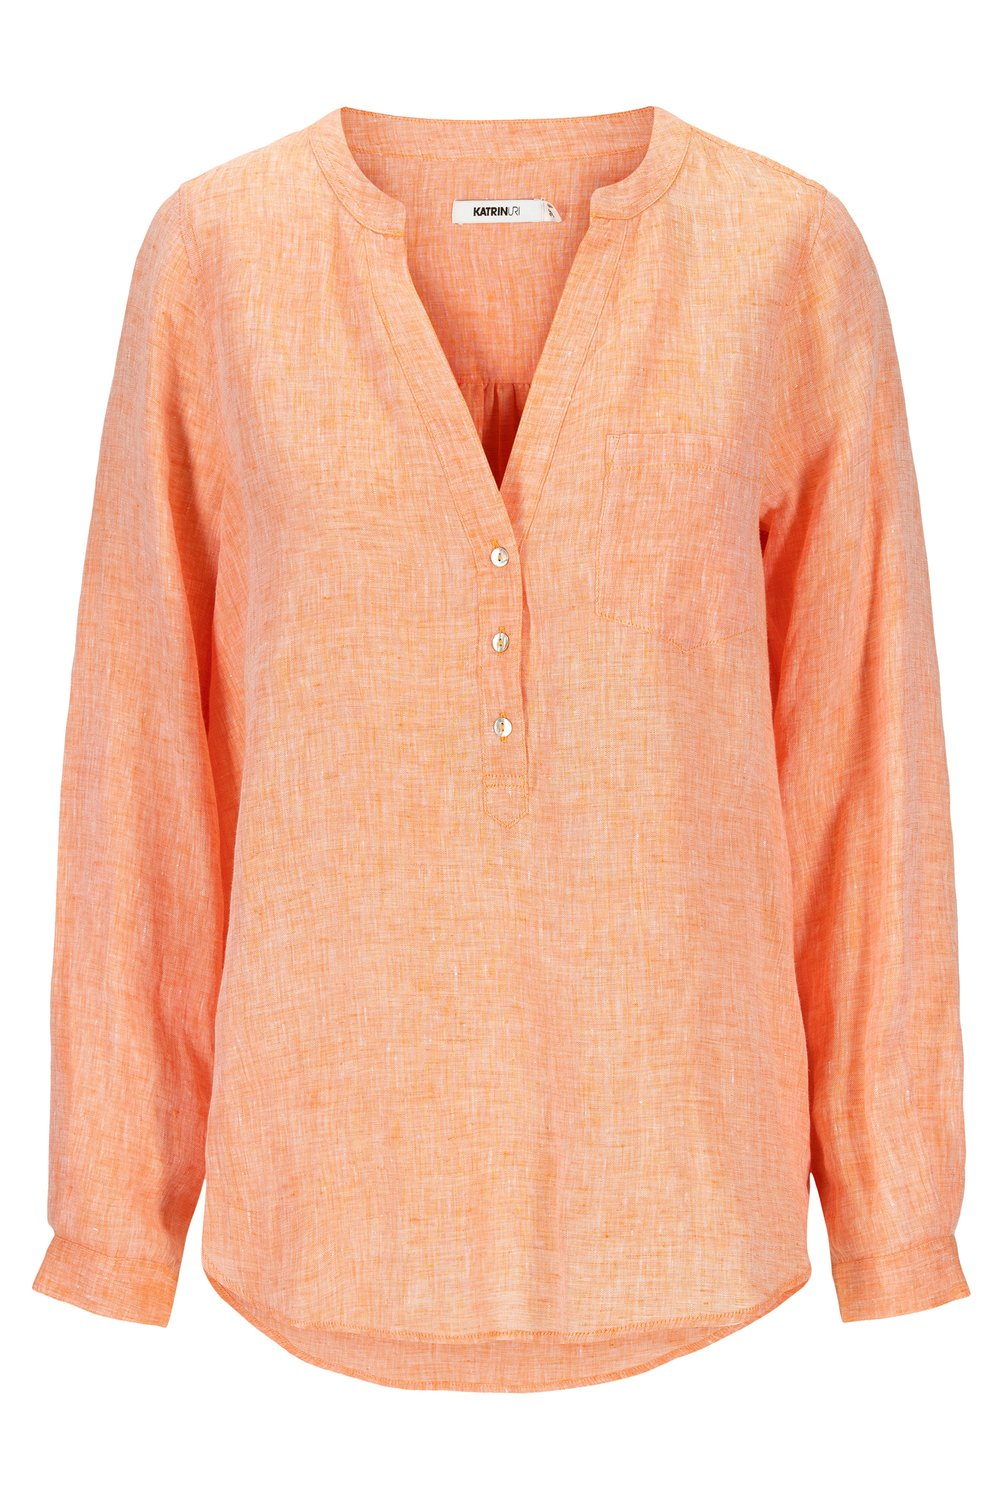 KATRIN URI skjorte Carmel Serena light orange